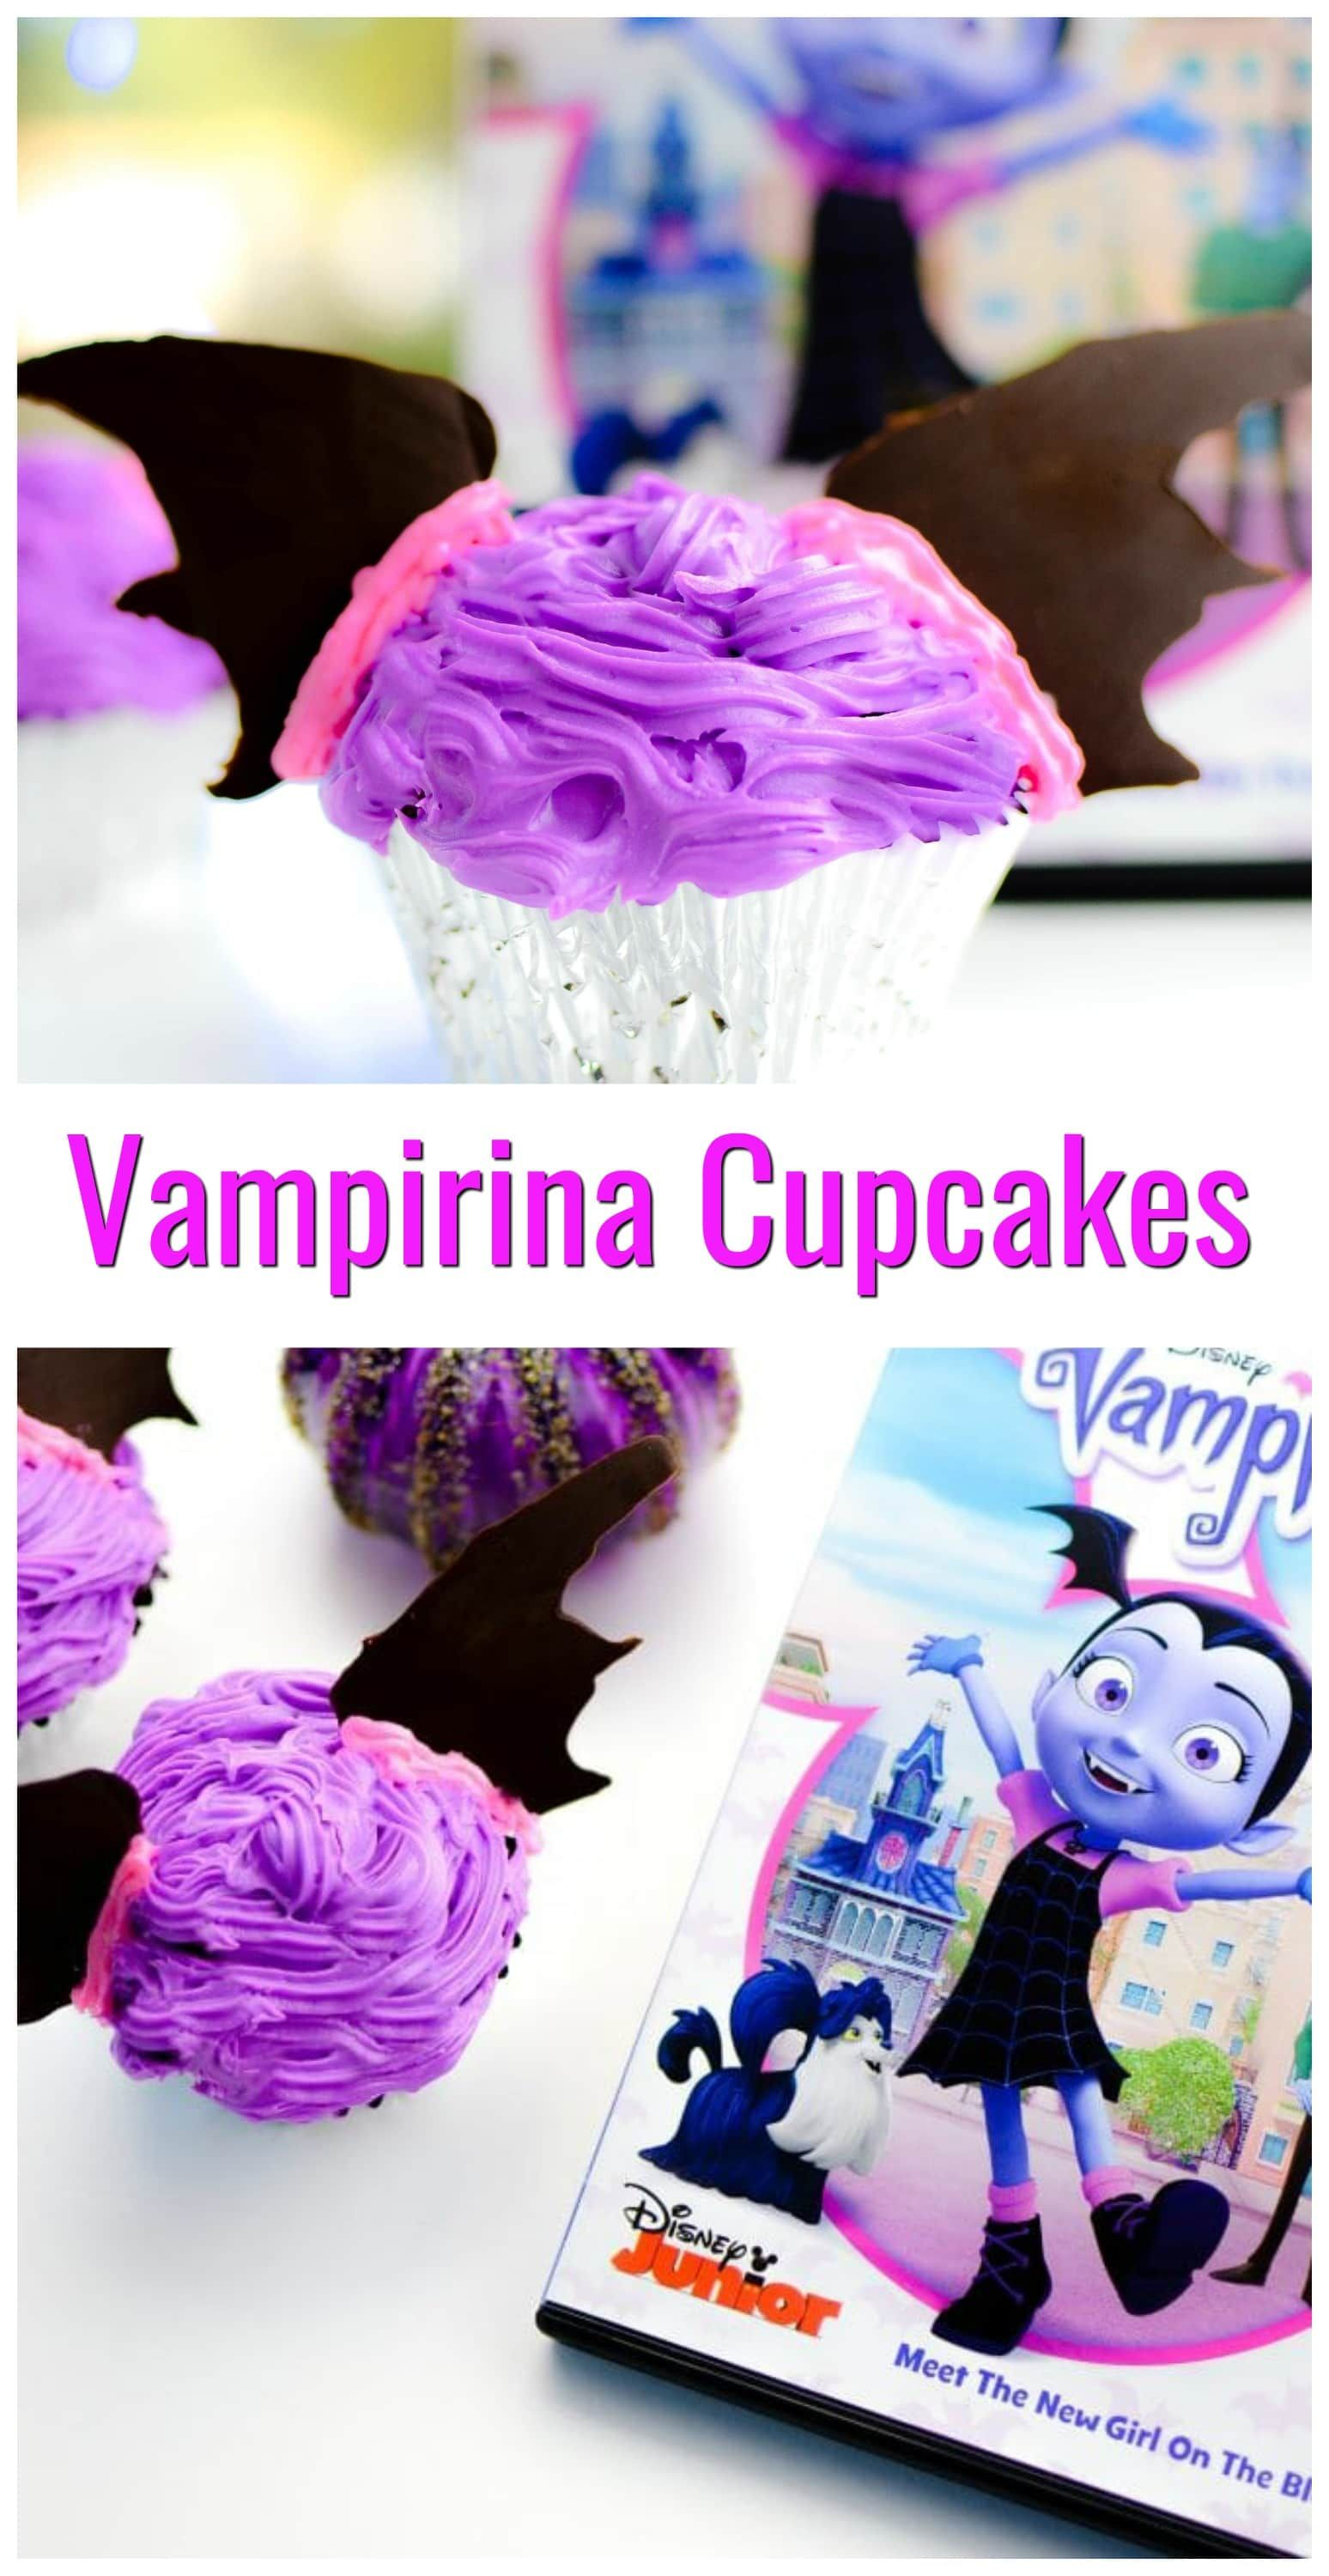 #VampirinaCupcakes That Are Perfect For A Vampirina Themed Birthday Party.  These Are A Great